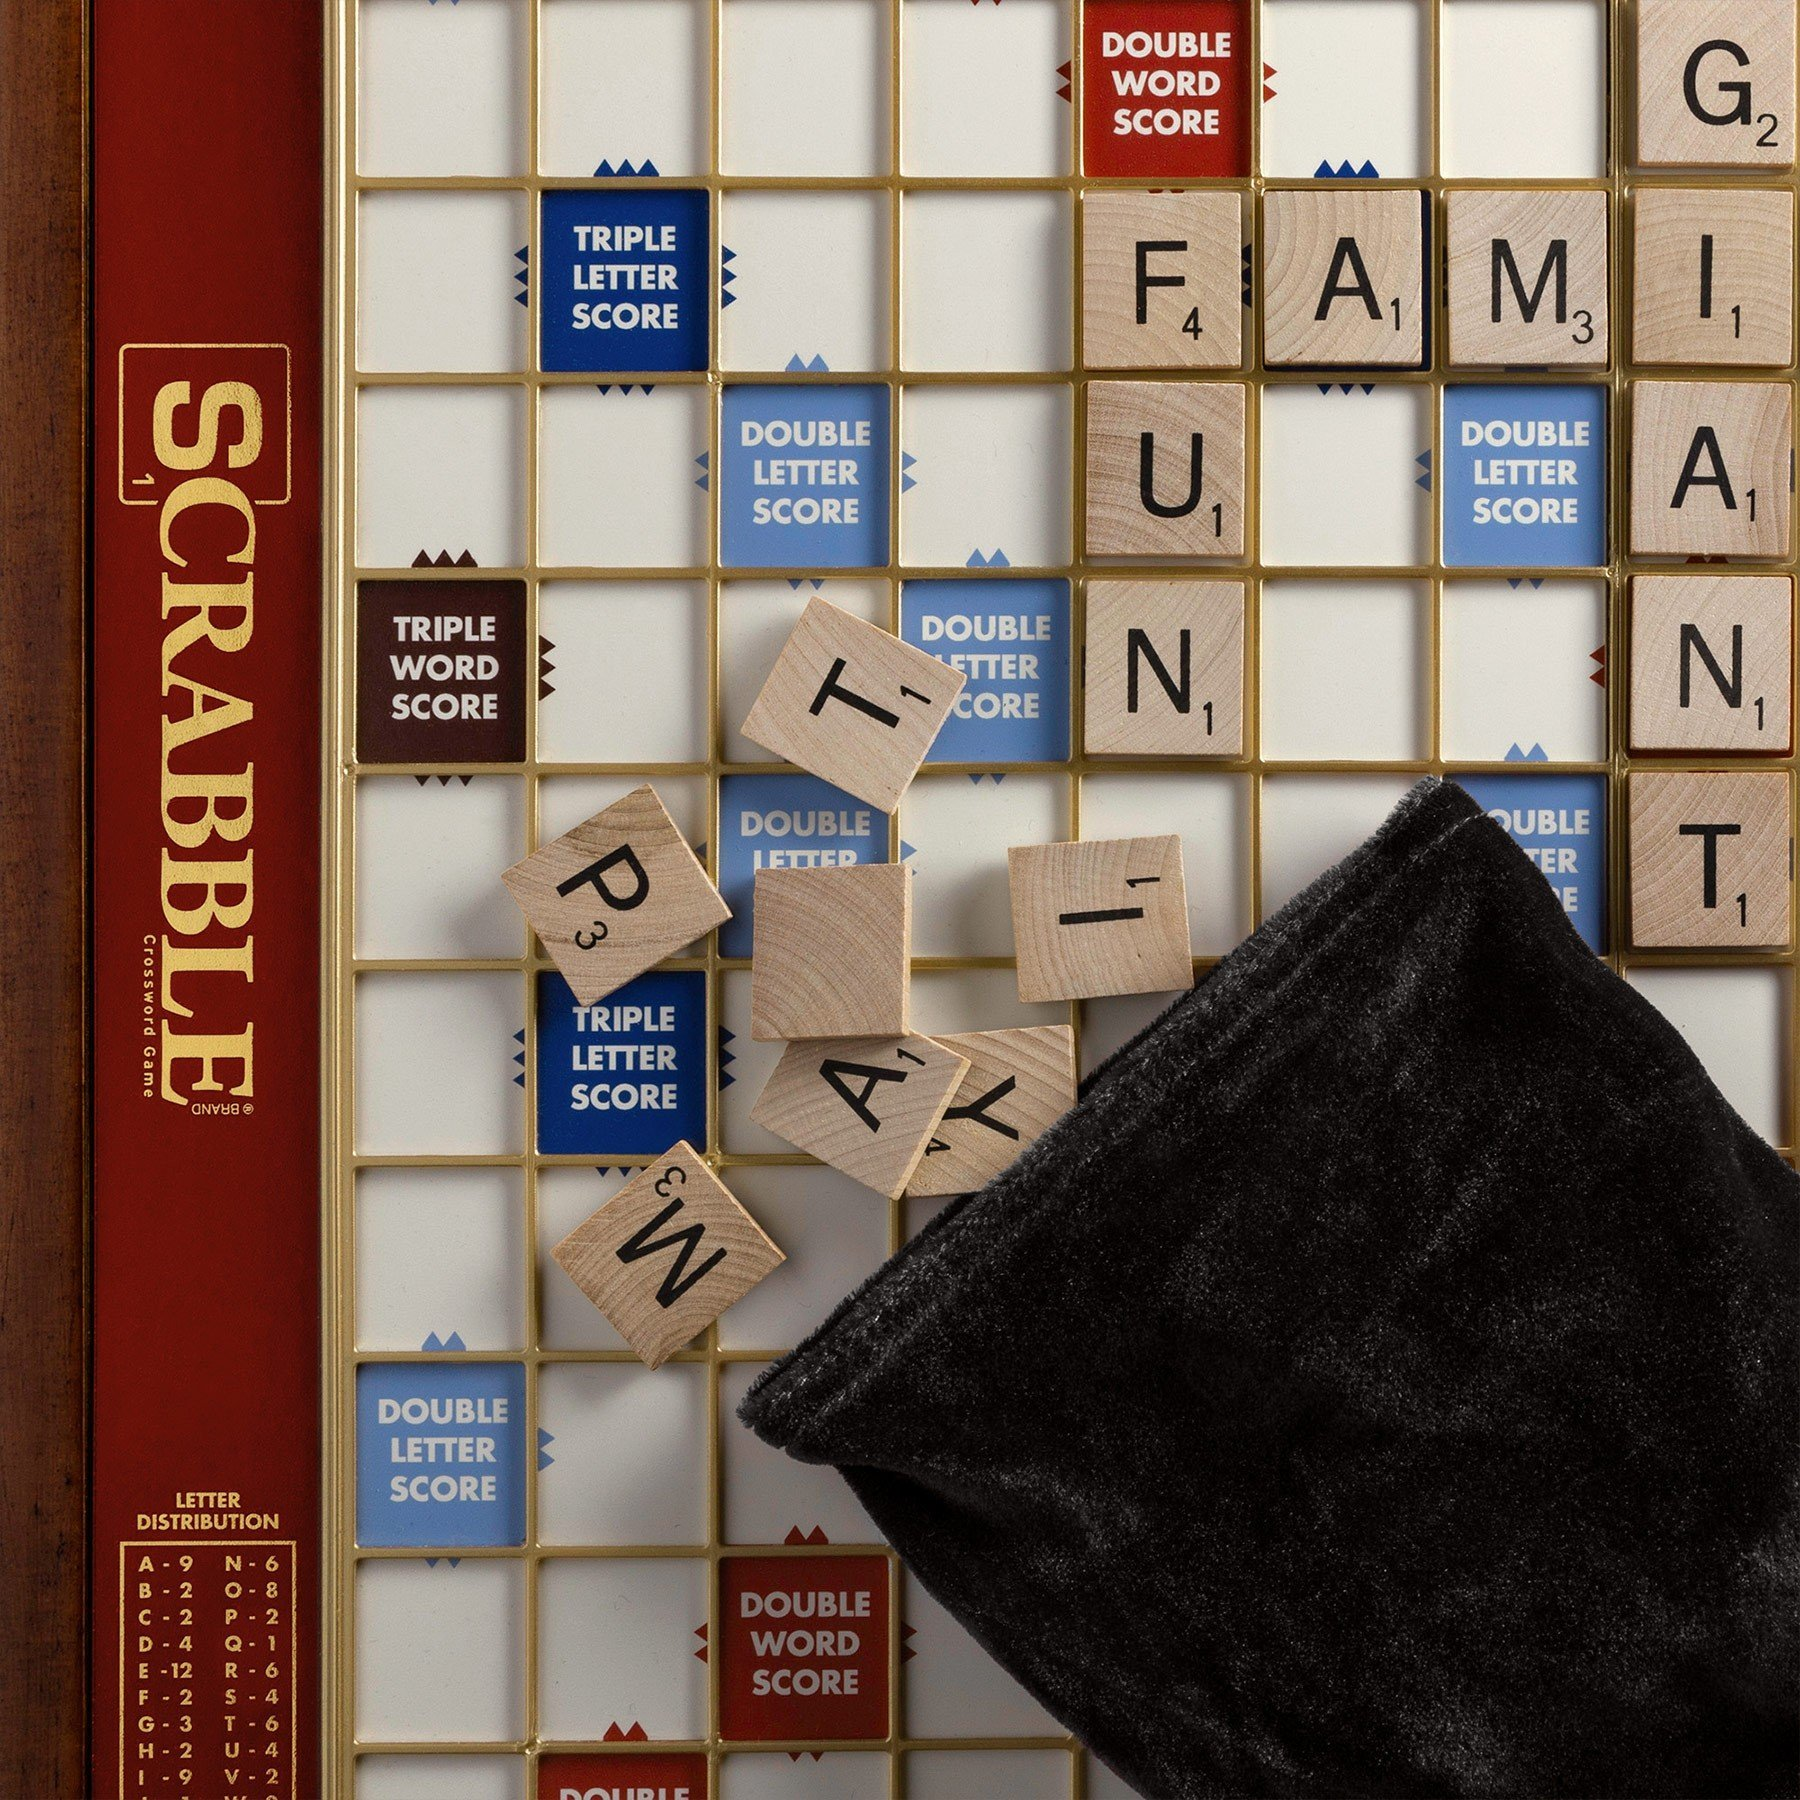 Deluxe Giant Scrabble Game by Scrabble (Image #4)